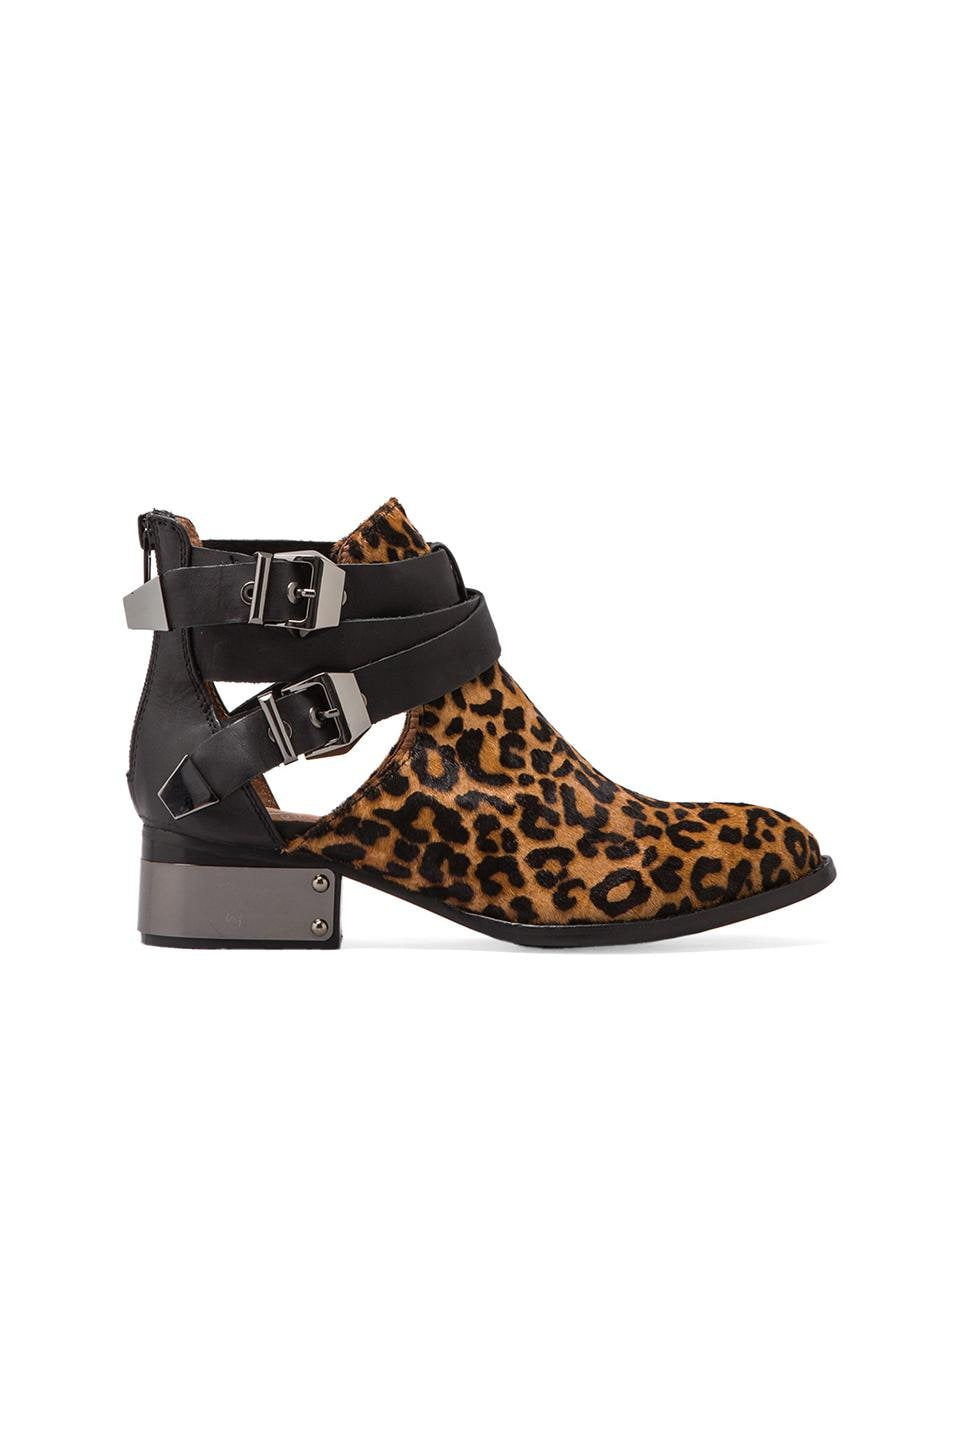 Jeffrey Campbell Everly Bootie with Calf Fur in Cheetah/Black